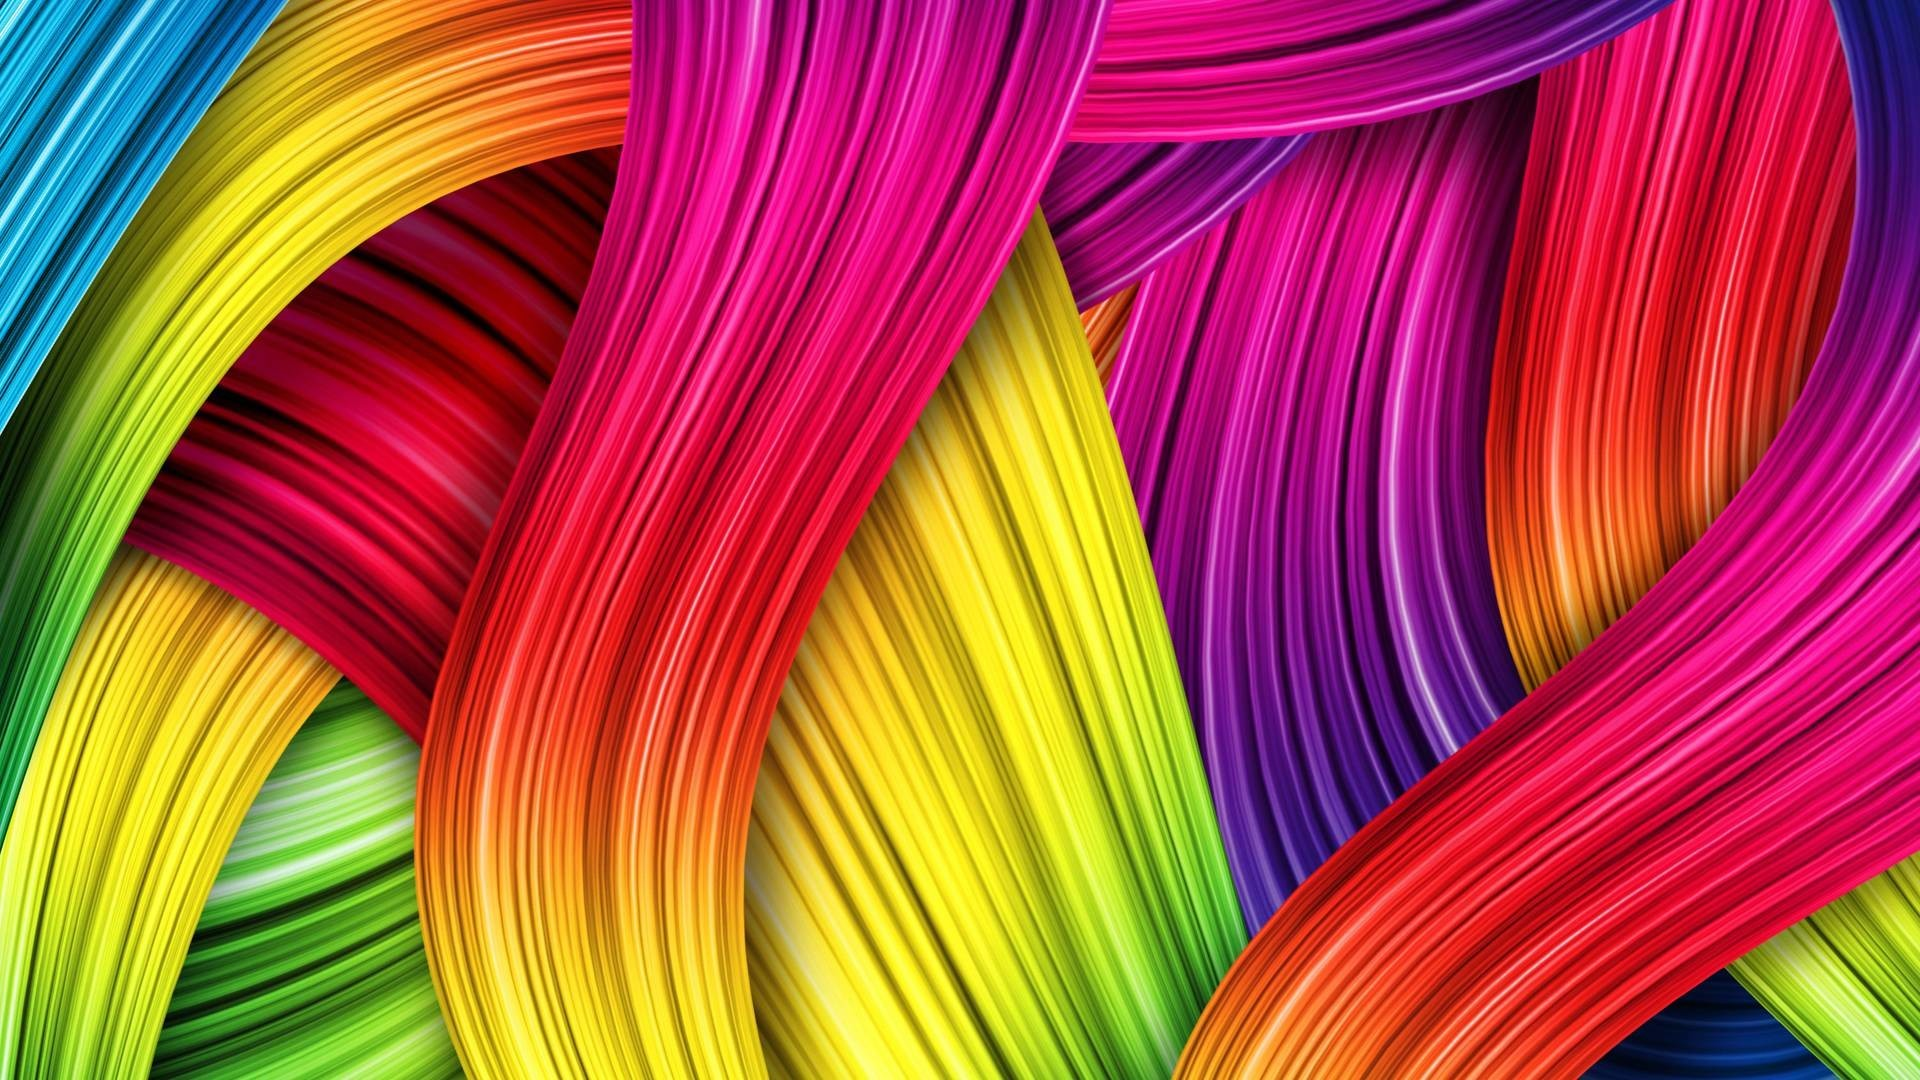 1920x1080  3D Cool Colorful Background Wallpaper · 61 · Download · Res:  2560x1440 ...